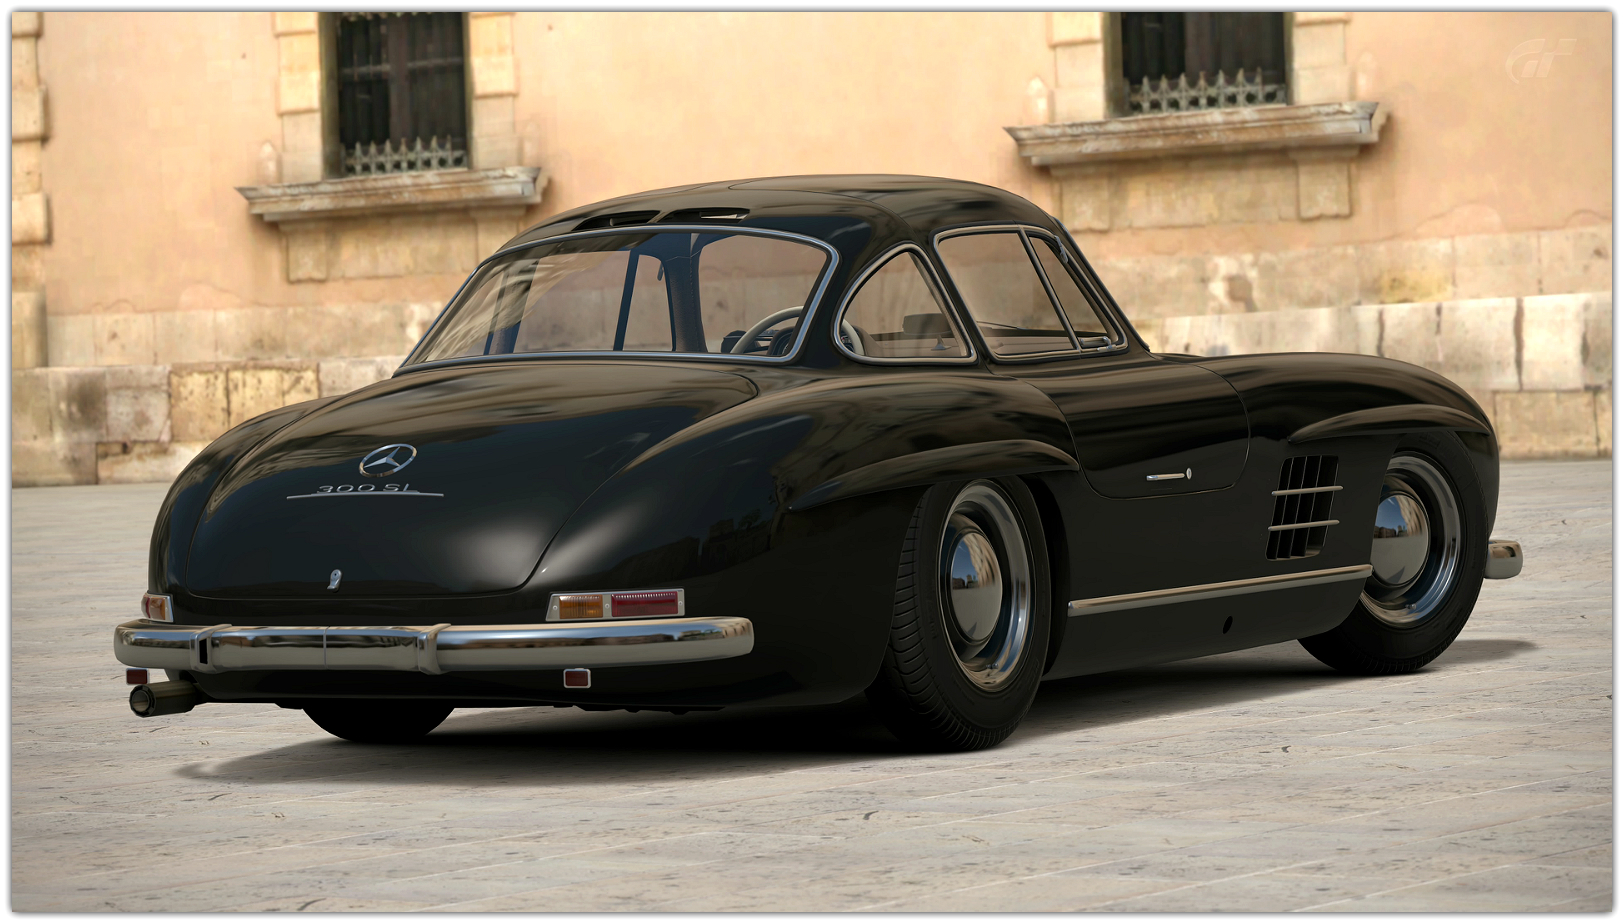 1954 mercedes benz 300sl gullwing gran turismo 6 by for 1954 mercedes benz 300sl